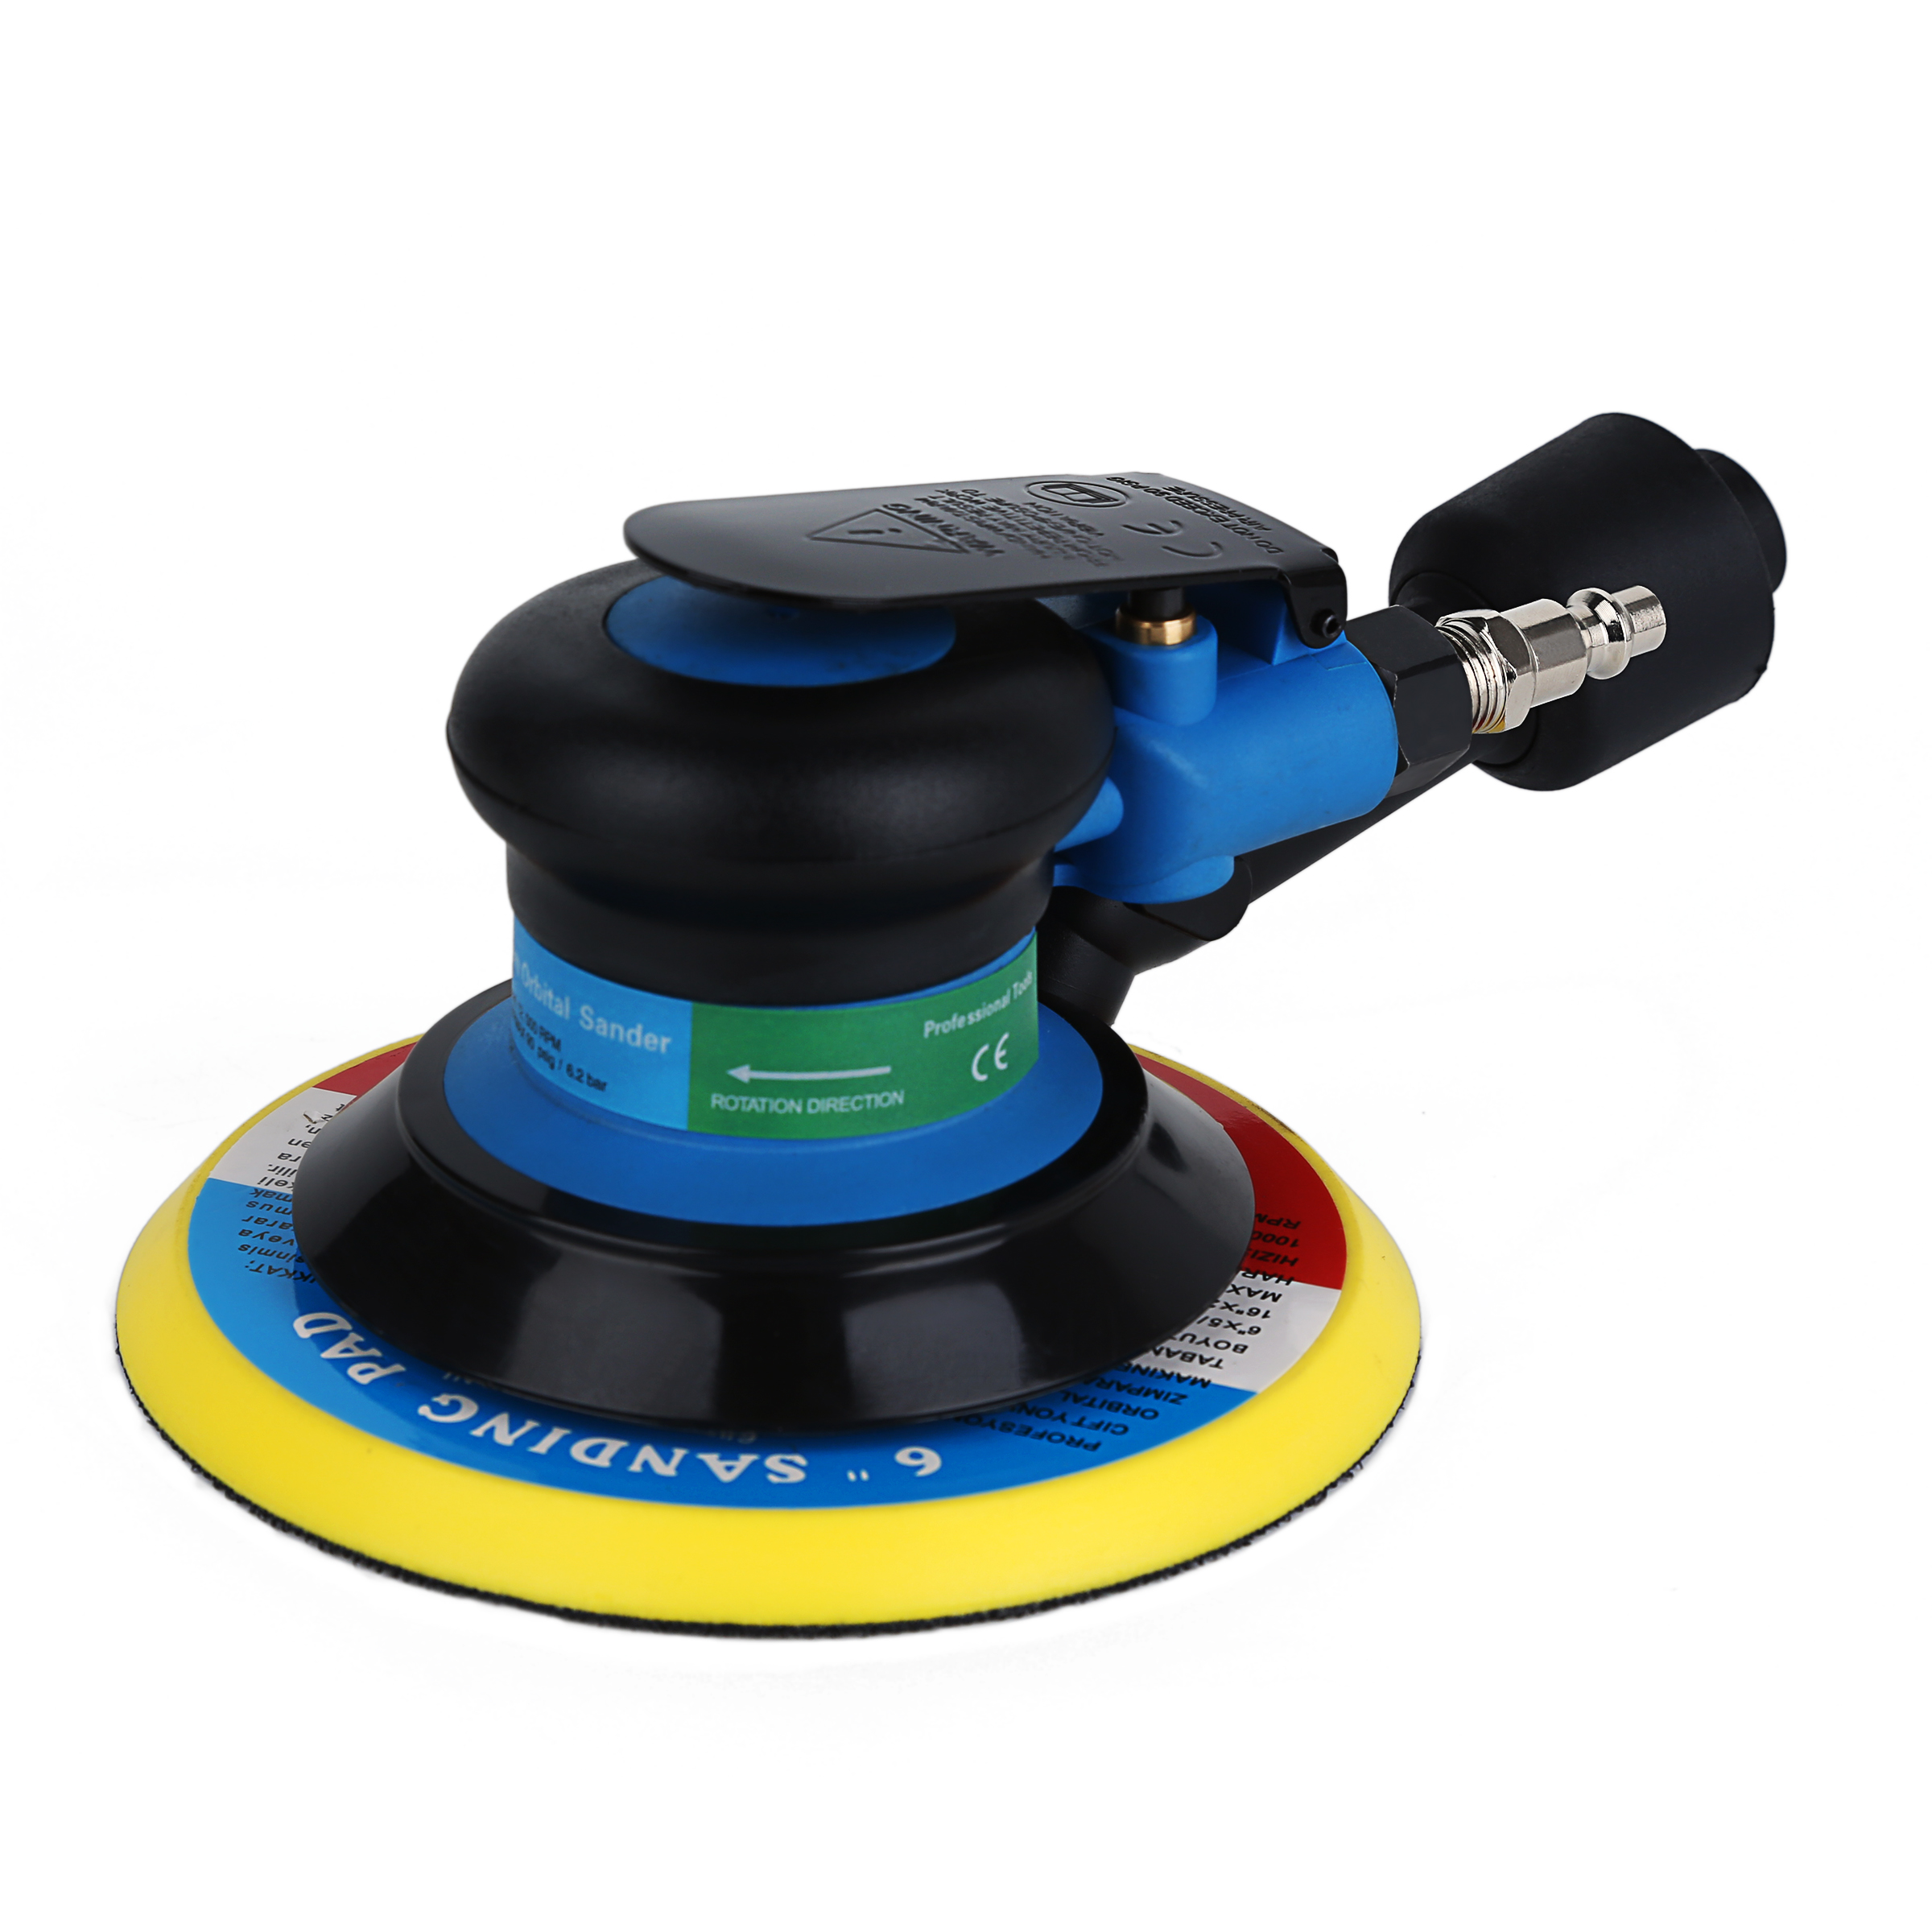 VALIANTOIN 6 inch Polisher 10500 RPM No-Load Speed Car Paint Care Tool Polishing Machine Sander Electric Woodworking Polisher